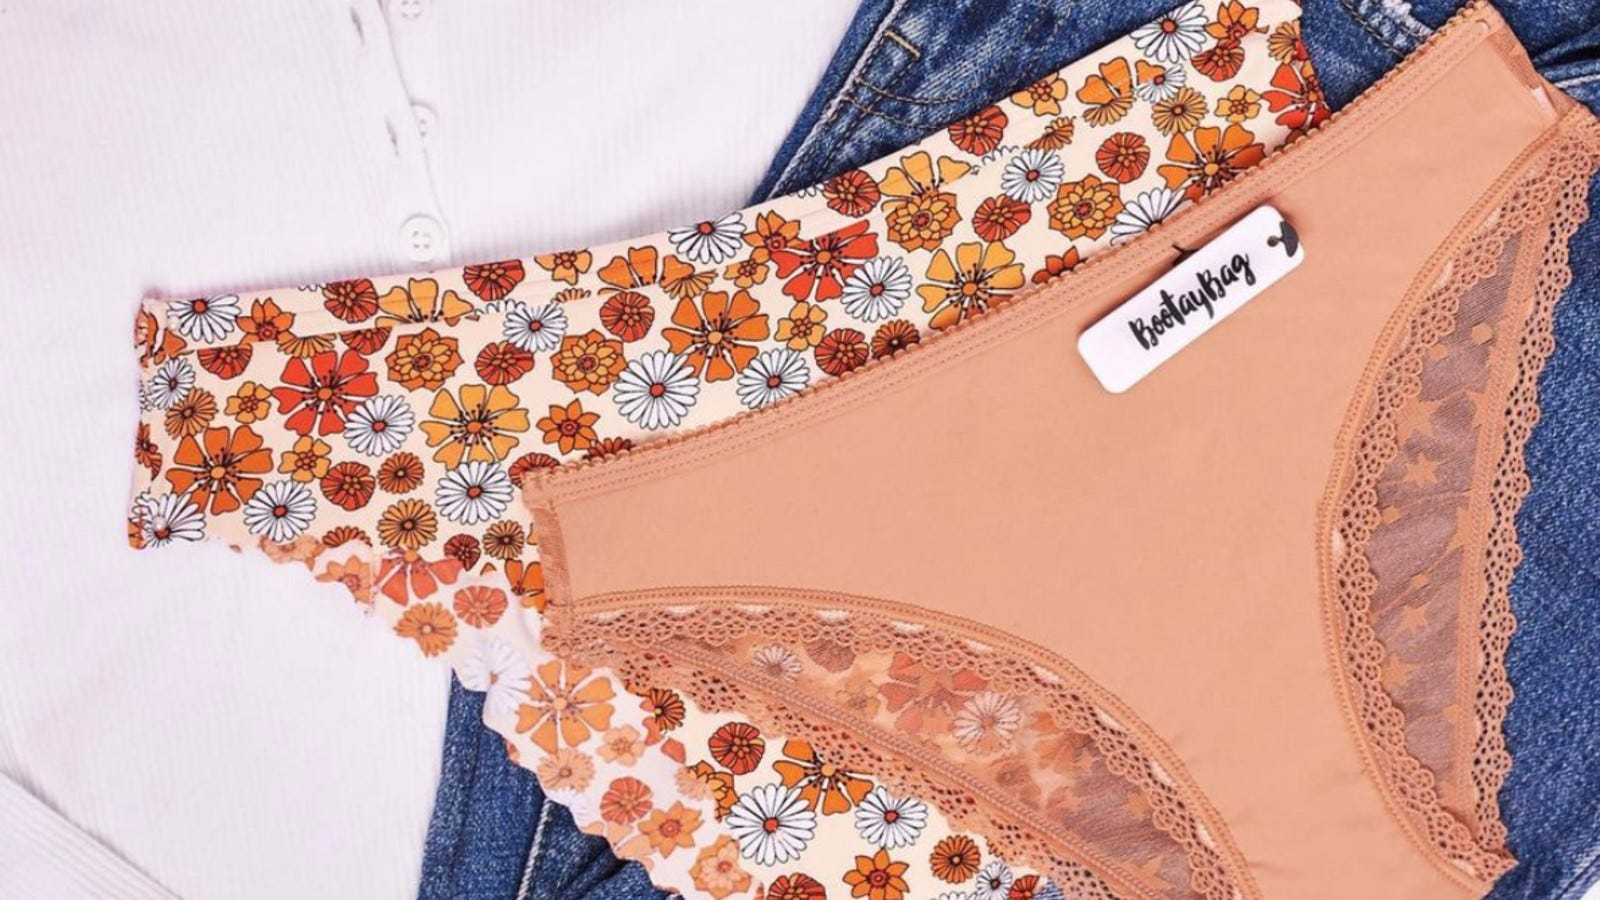 Two pairs of floral print and lace underwear.